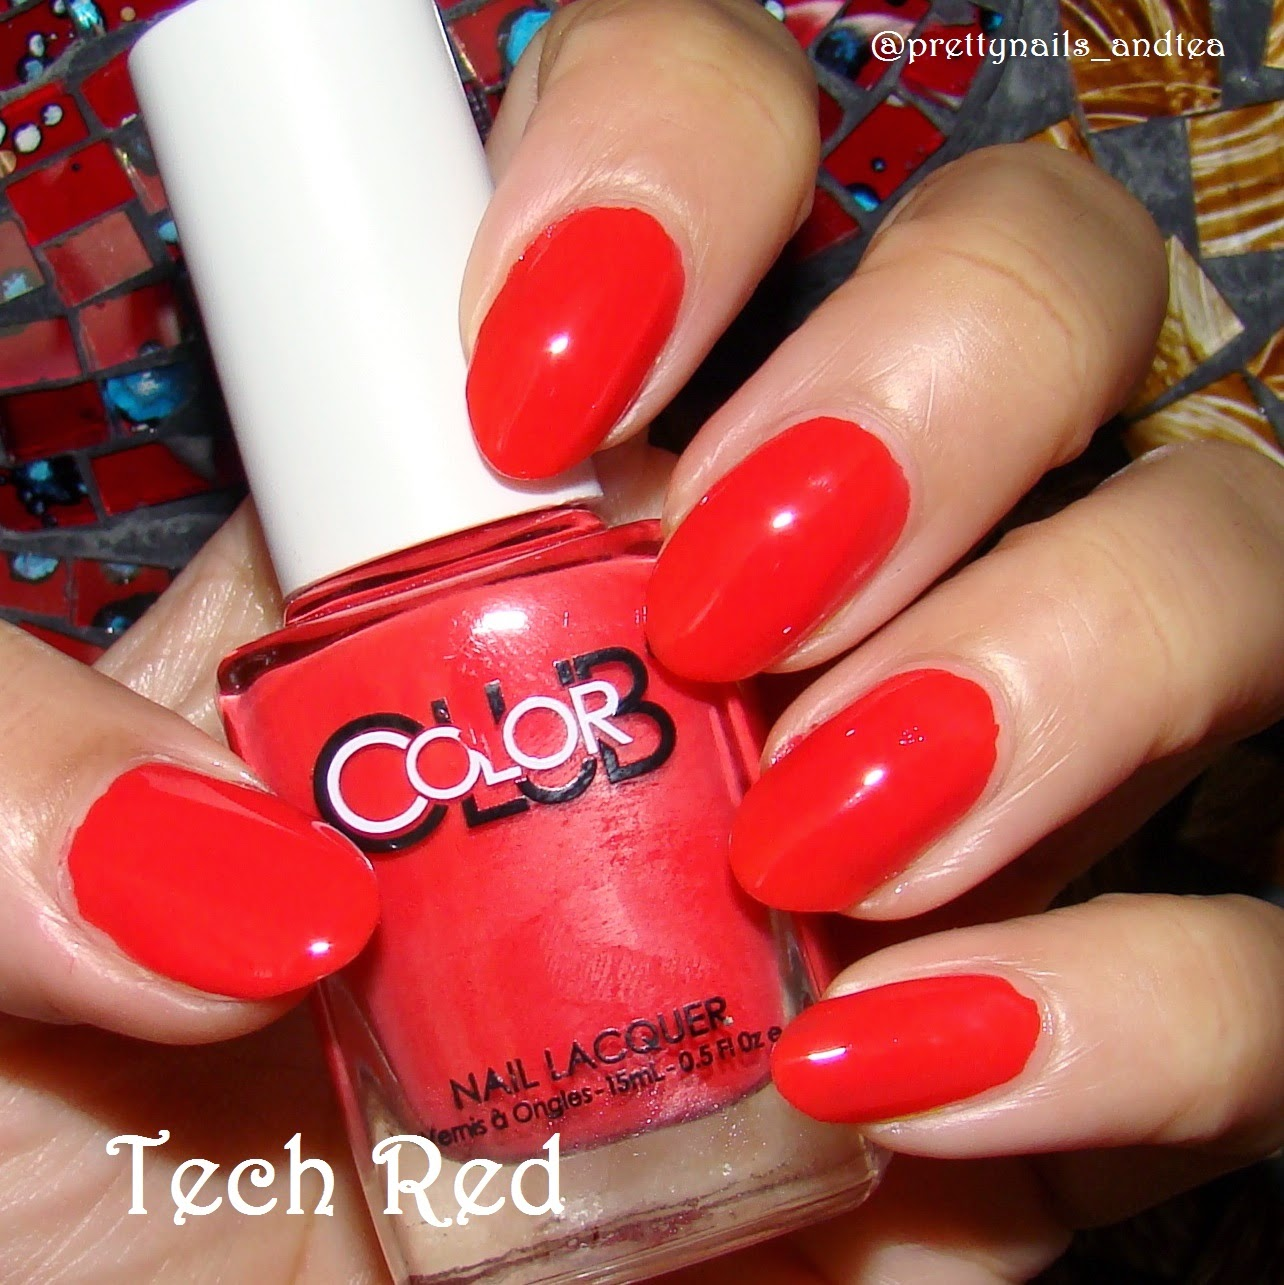 tech red color club yahoo